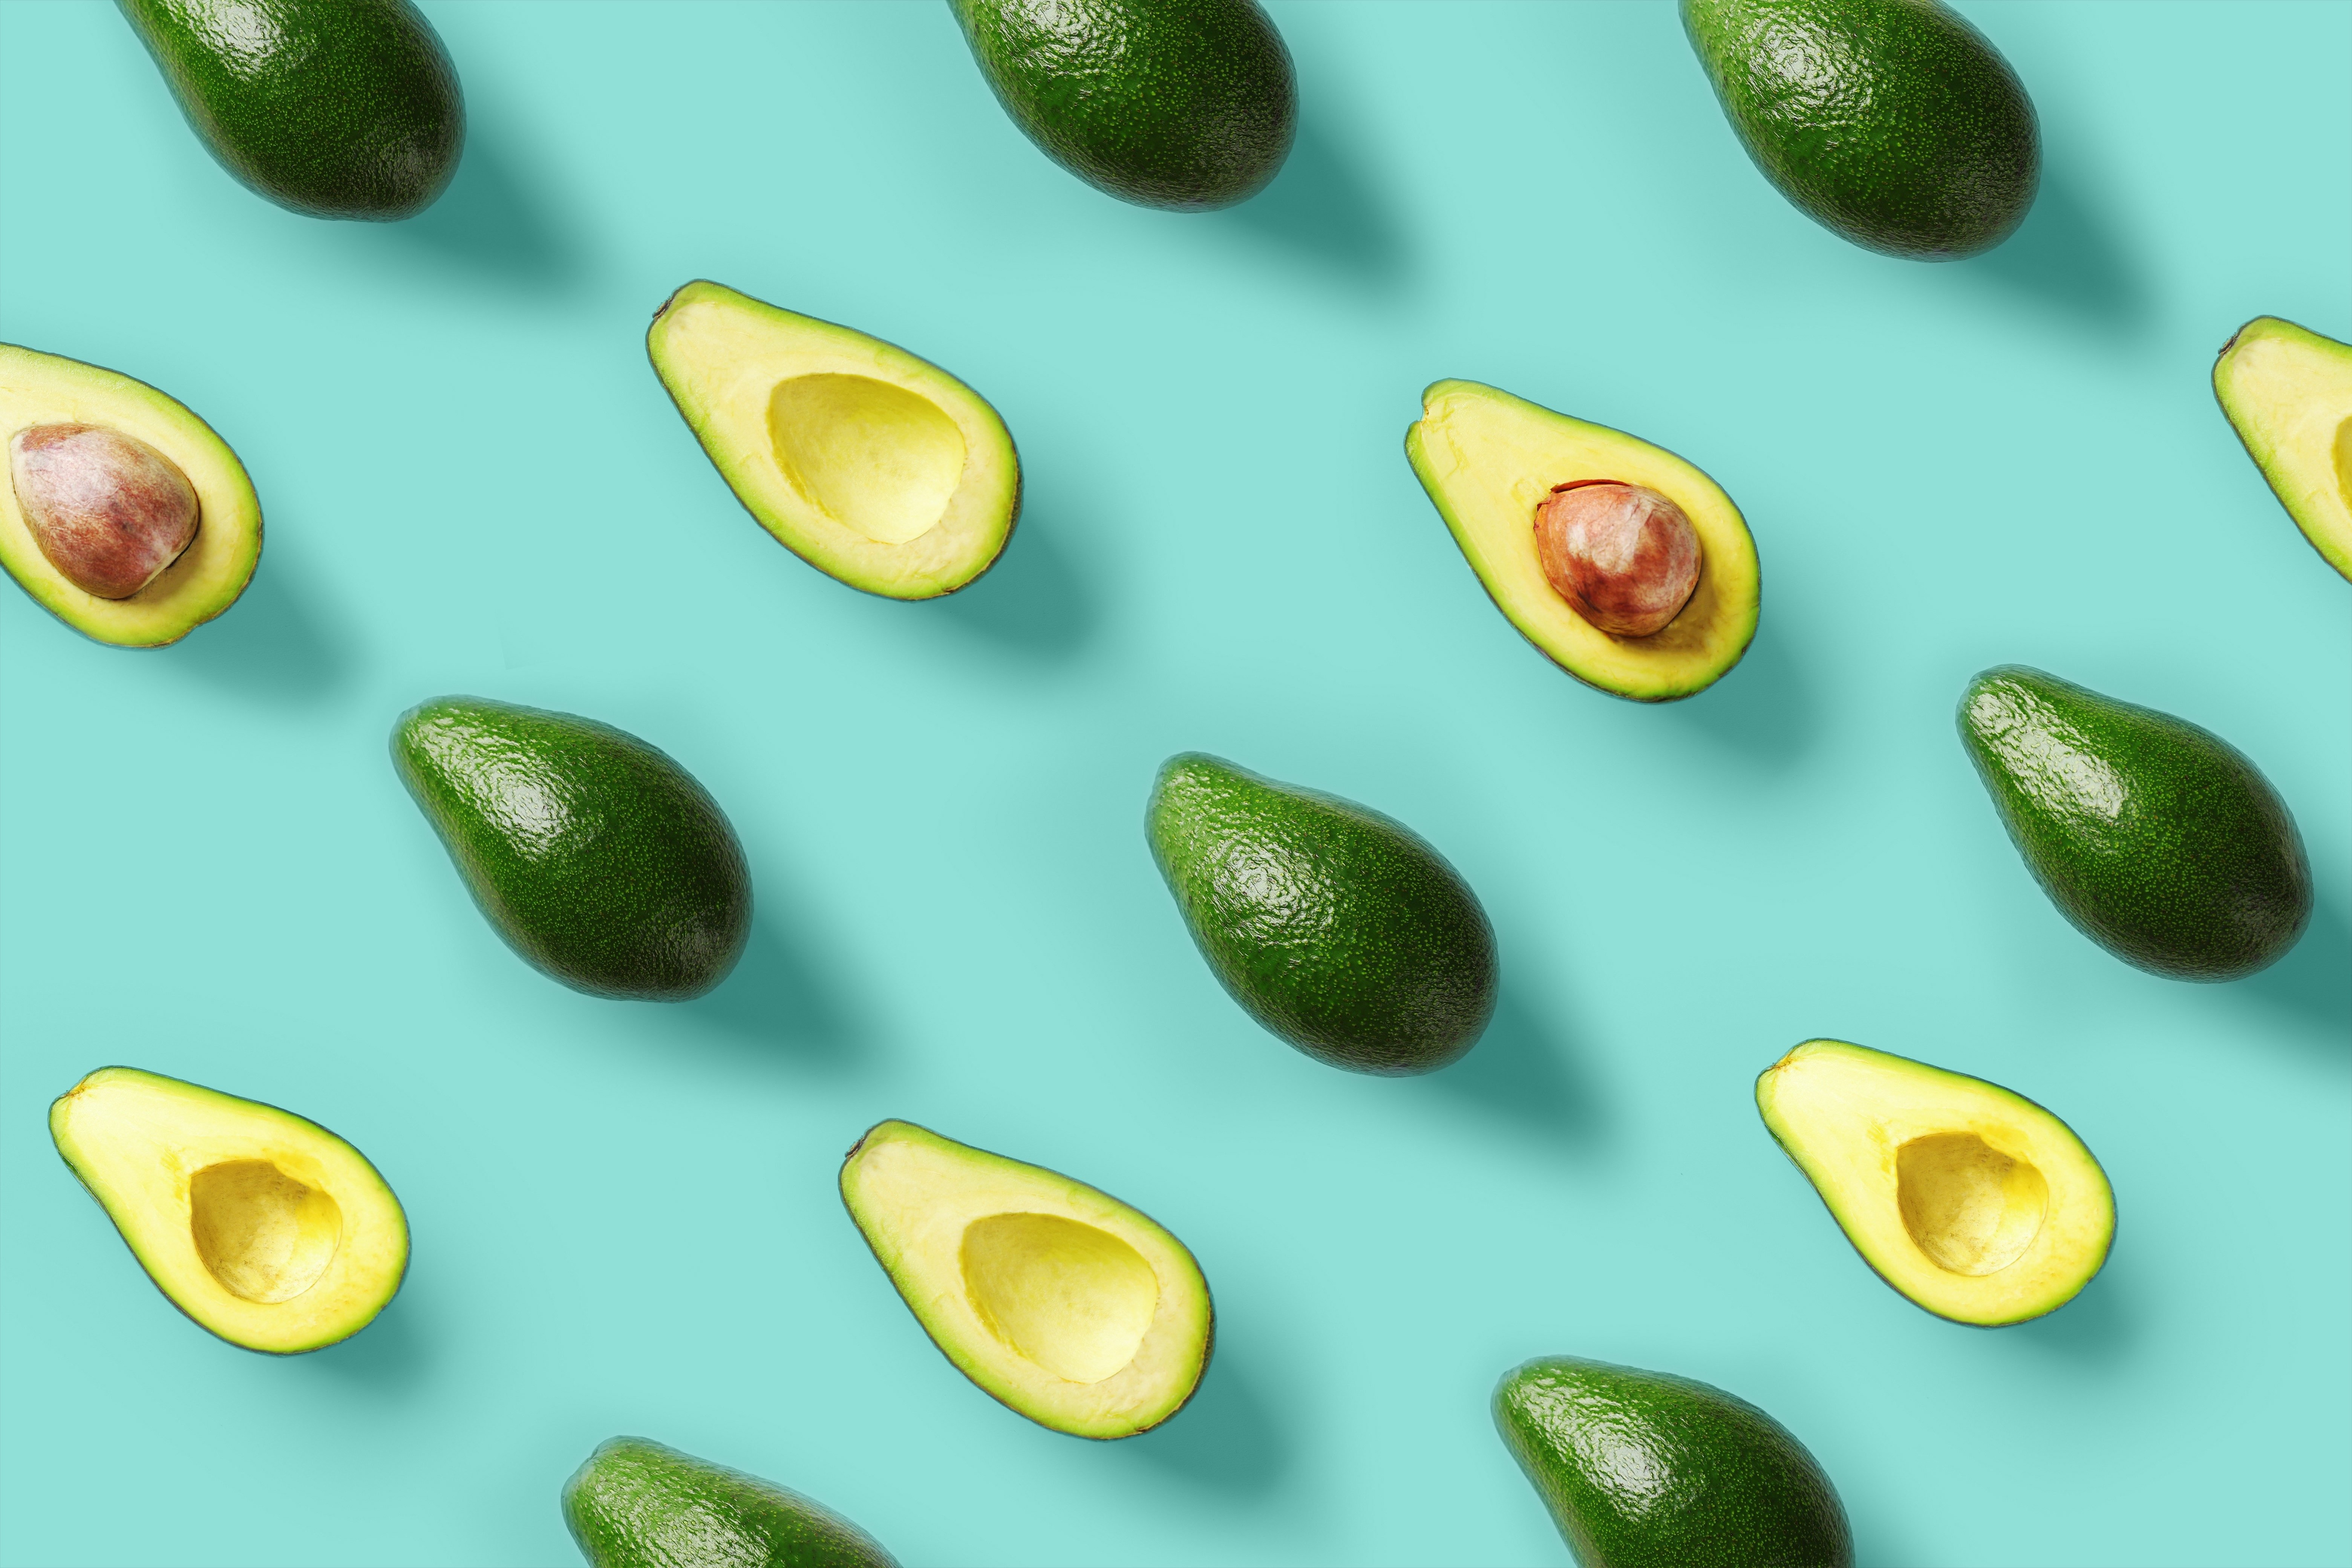 Could Avocados Be the Key to Weight Loss?